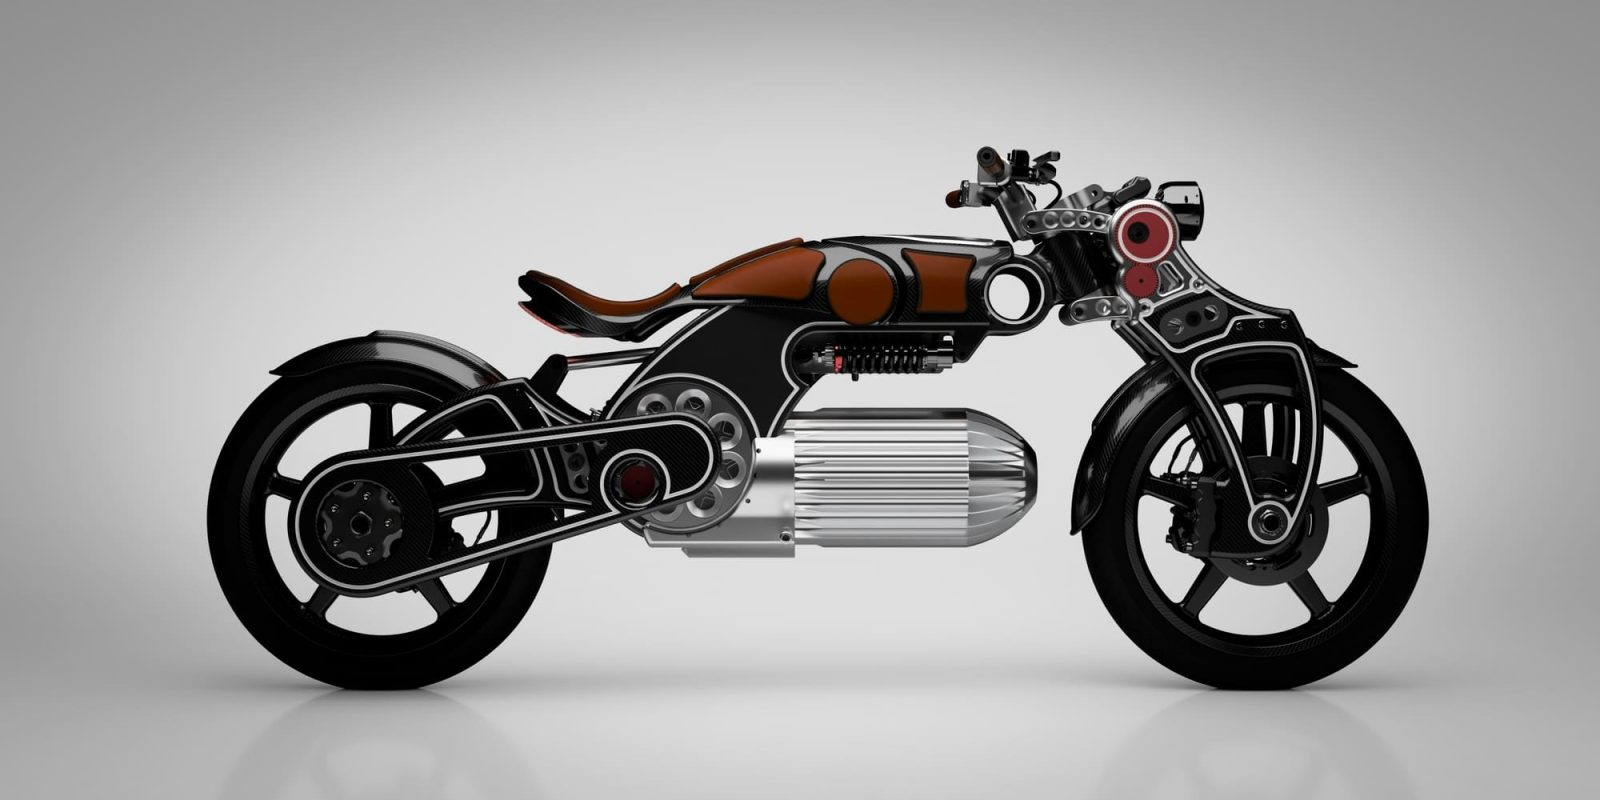 This well-endowed electric motorcycle is actually prepping for production